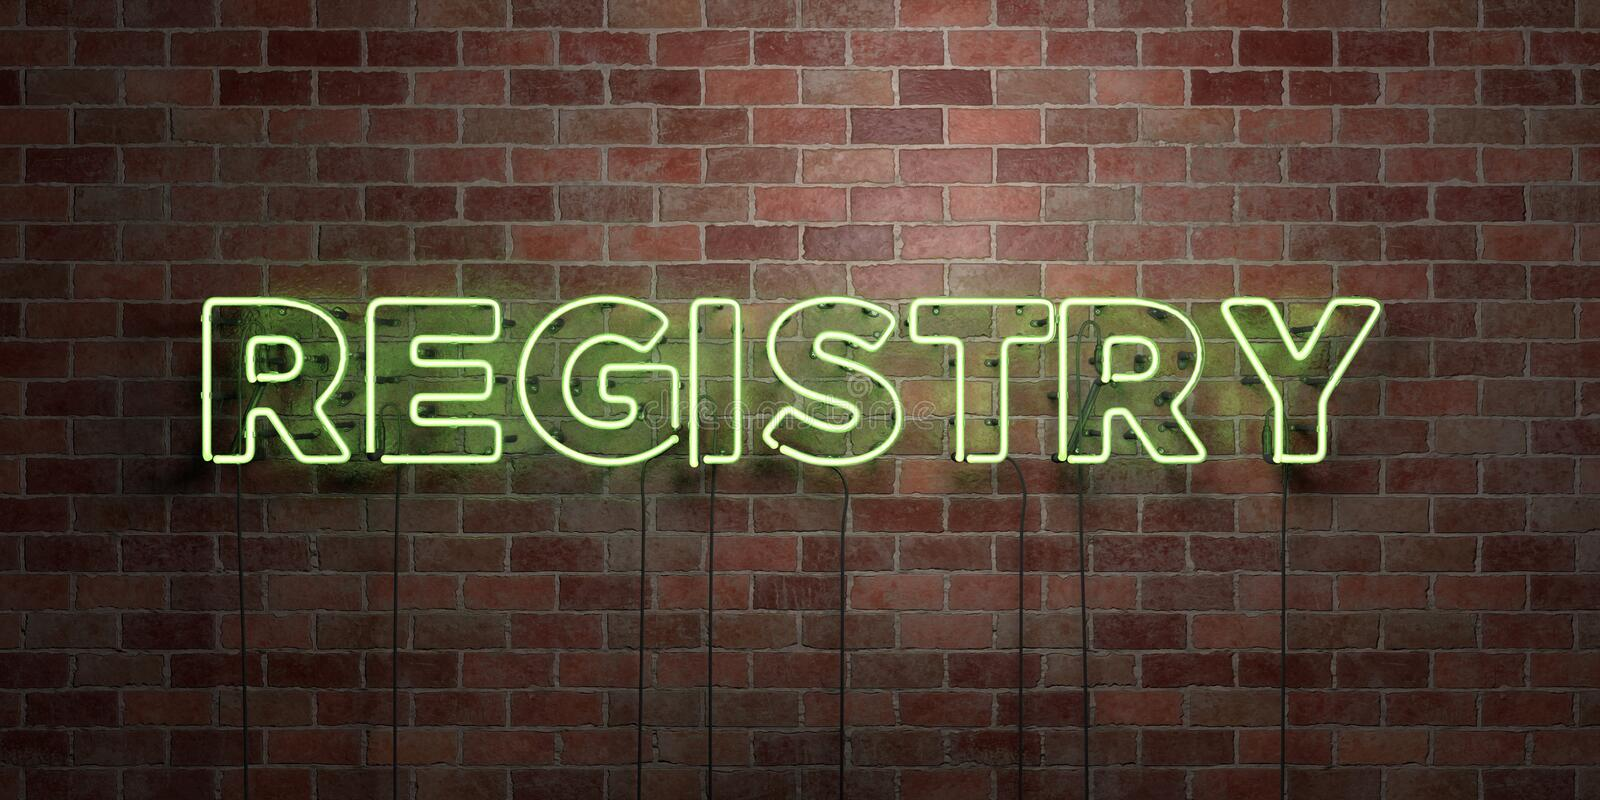 REGISTRY - fluorescent Neon tube Sign on brickwork - Front view - 3D rendered royalty free stock picture. Can be used for online banner ads and direct mailers stock illustration